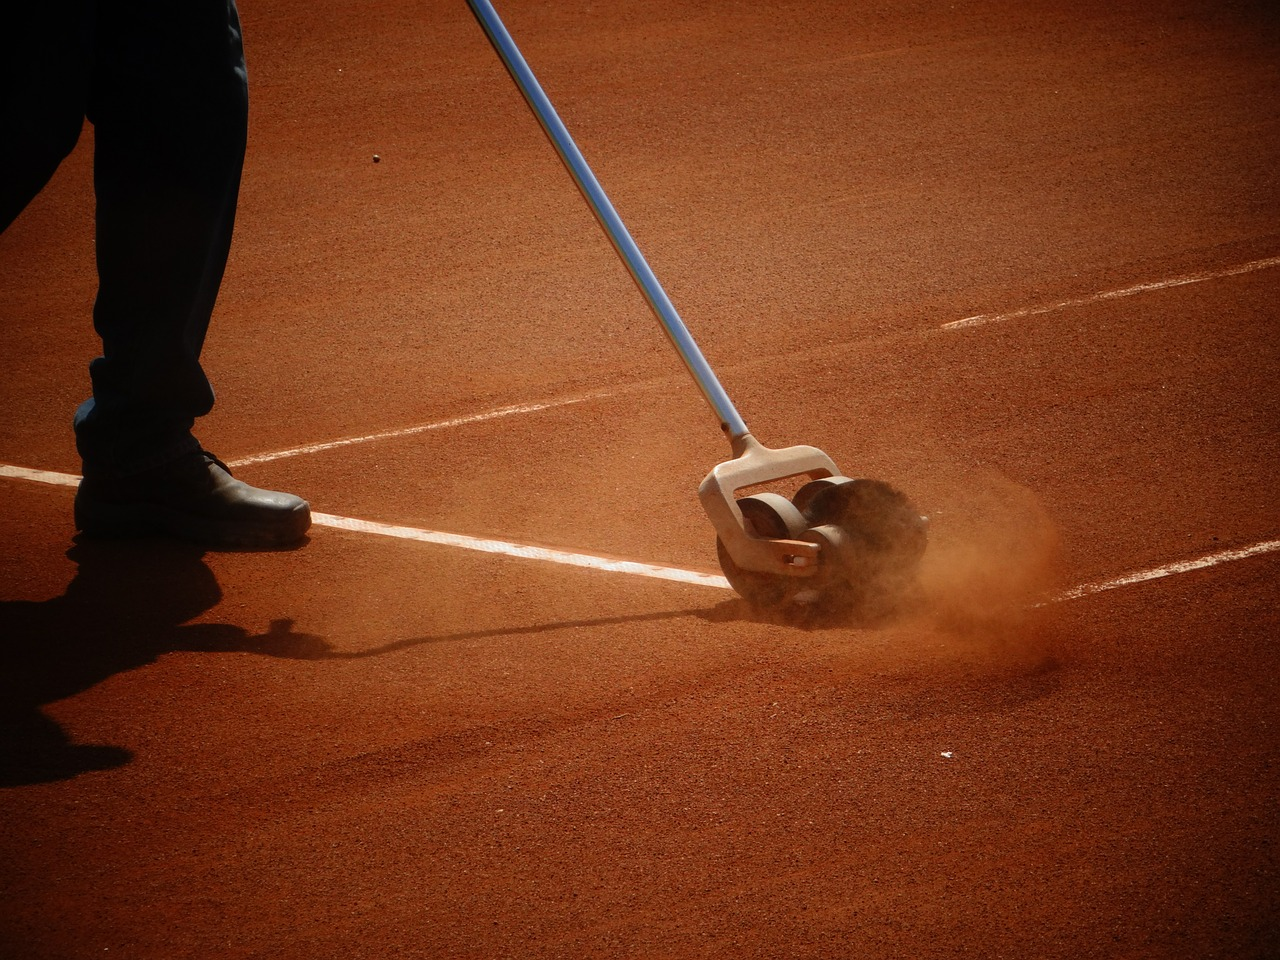 Clay Tennis Court